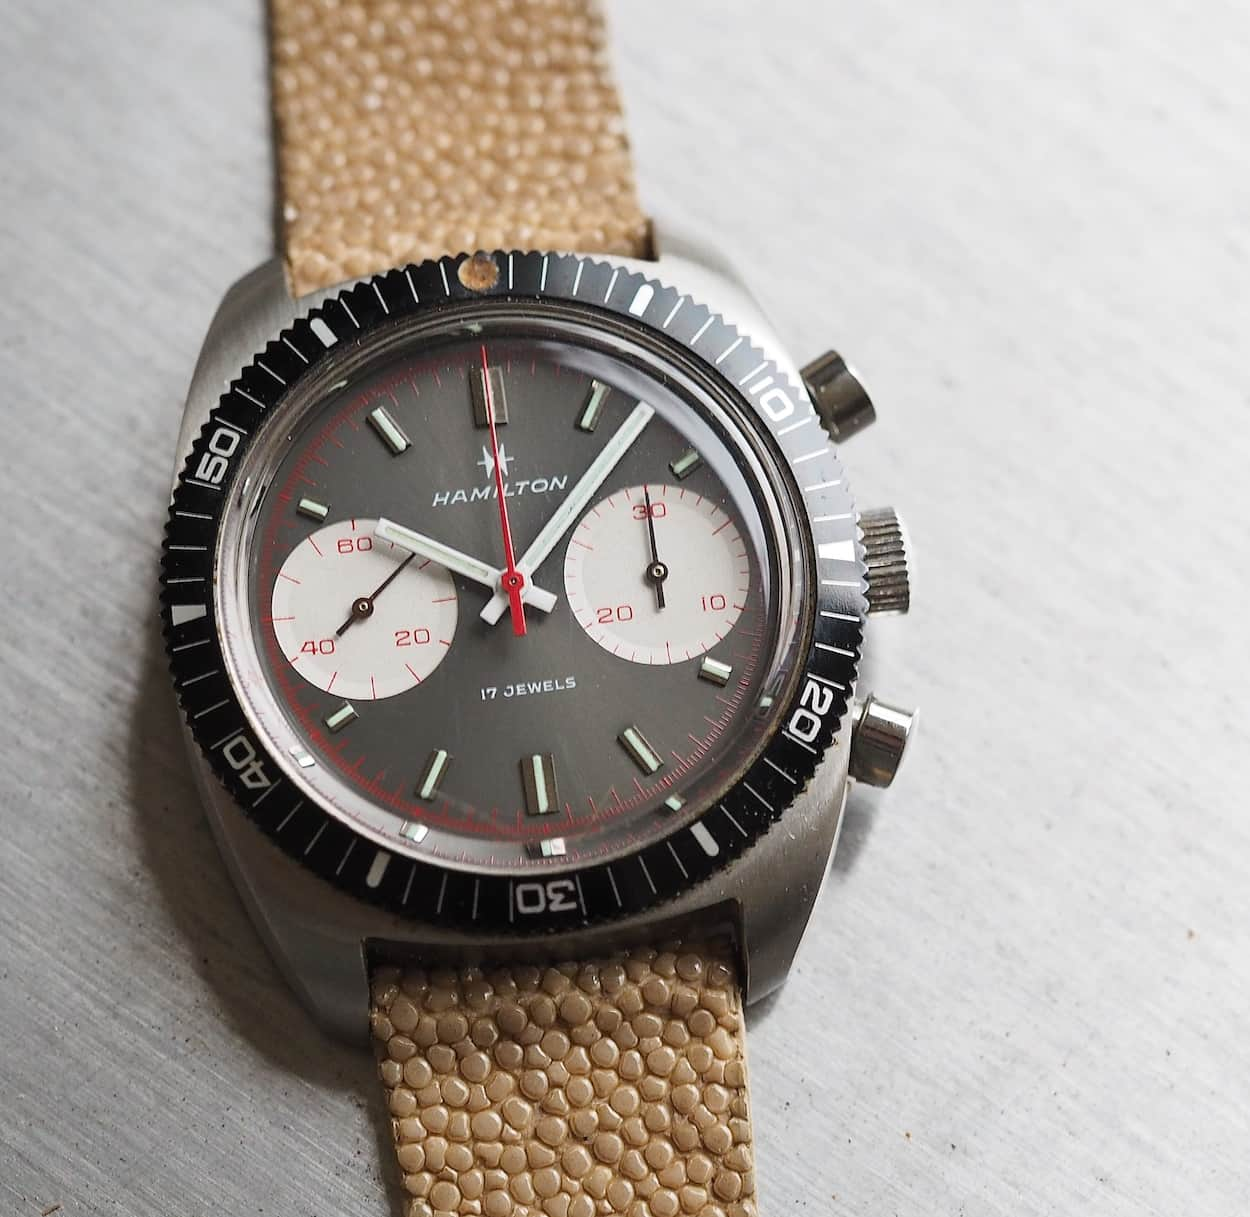 Hamilton Chrono-Diver was rated to 666 feet